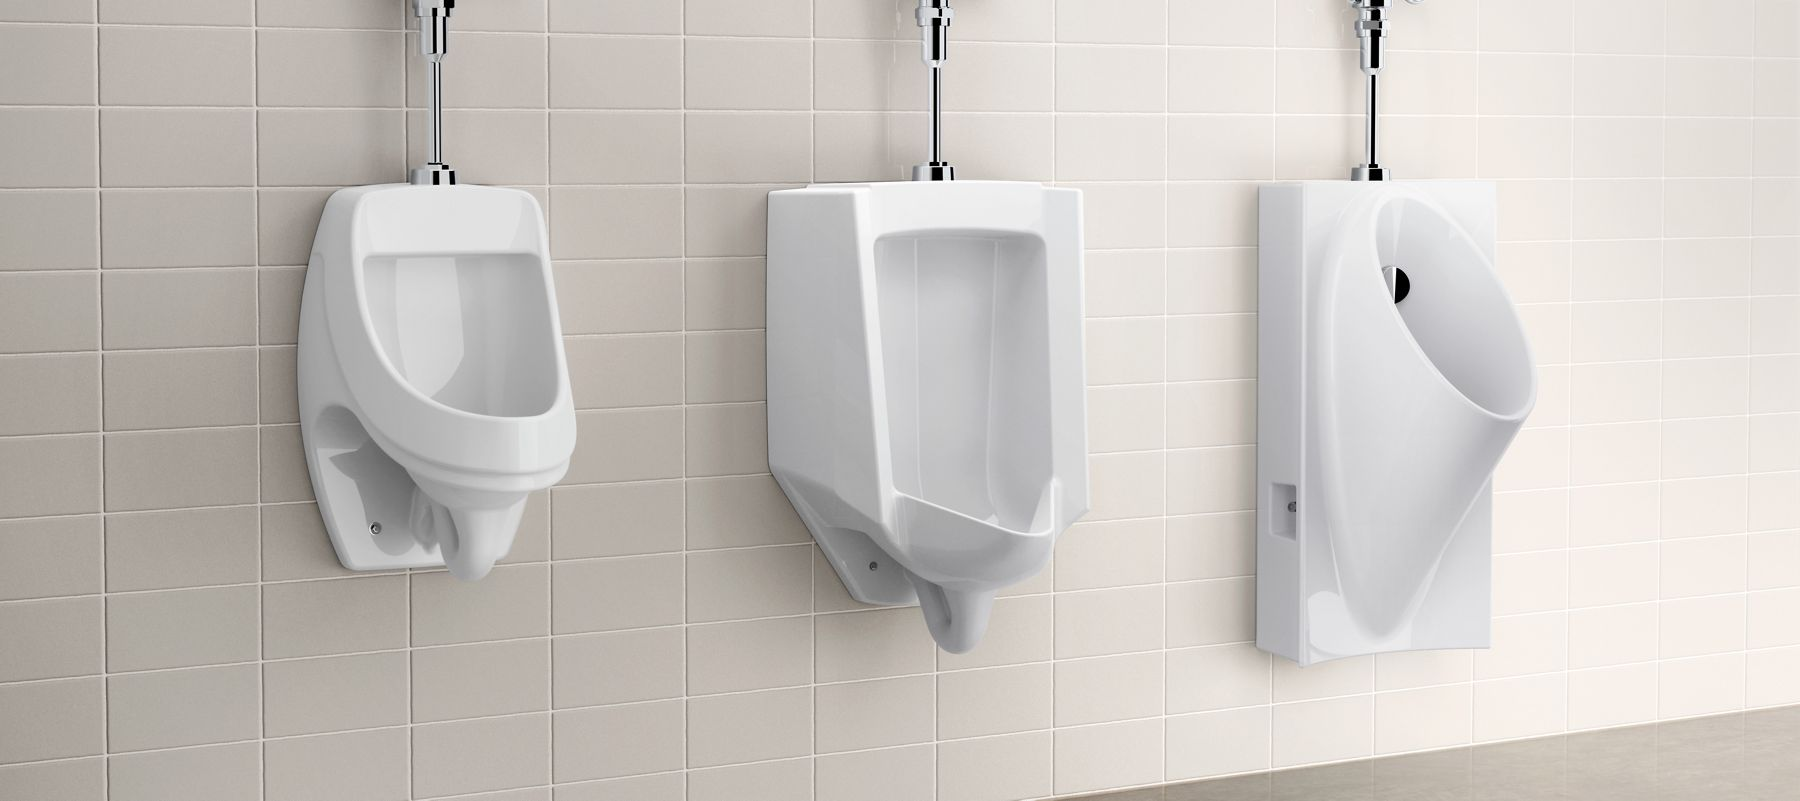 Urinal in bathroom